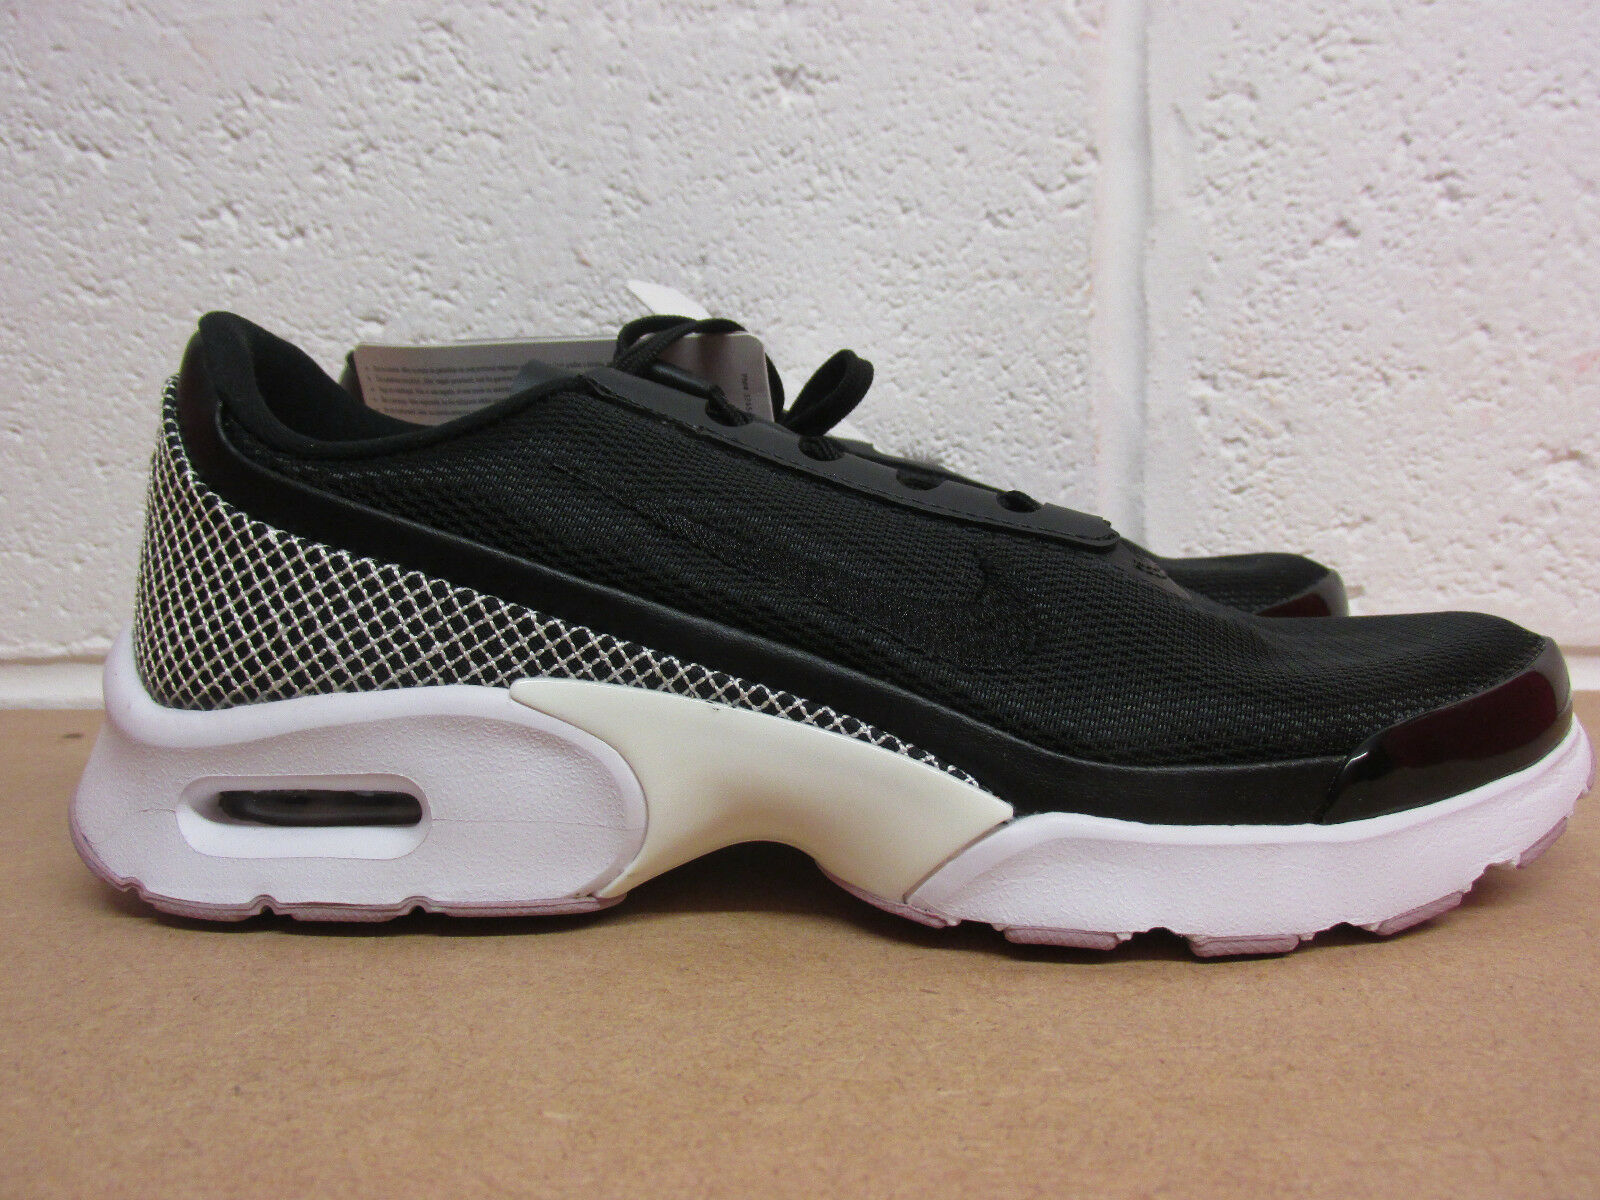 Nike air max jewell 917673 001  Femme  trainers Baskets Baskets trainers  chaussures  SAMPLE 4cd82a